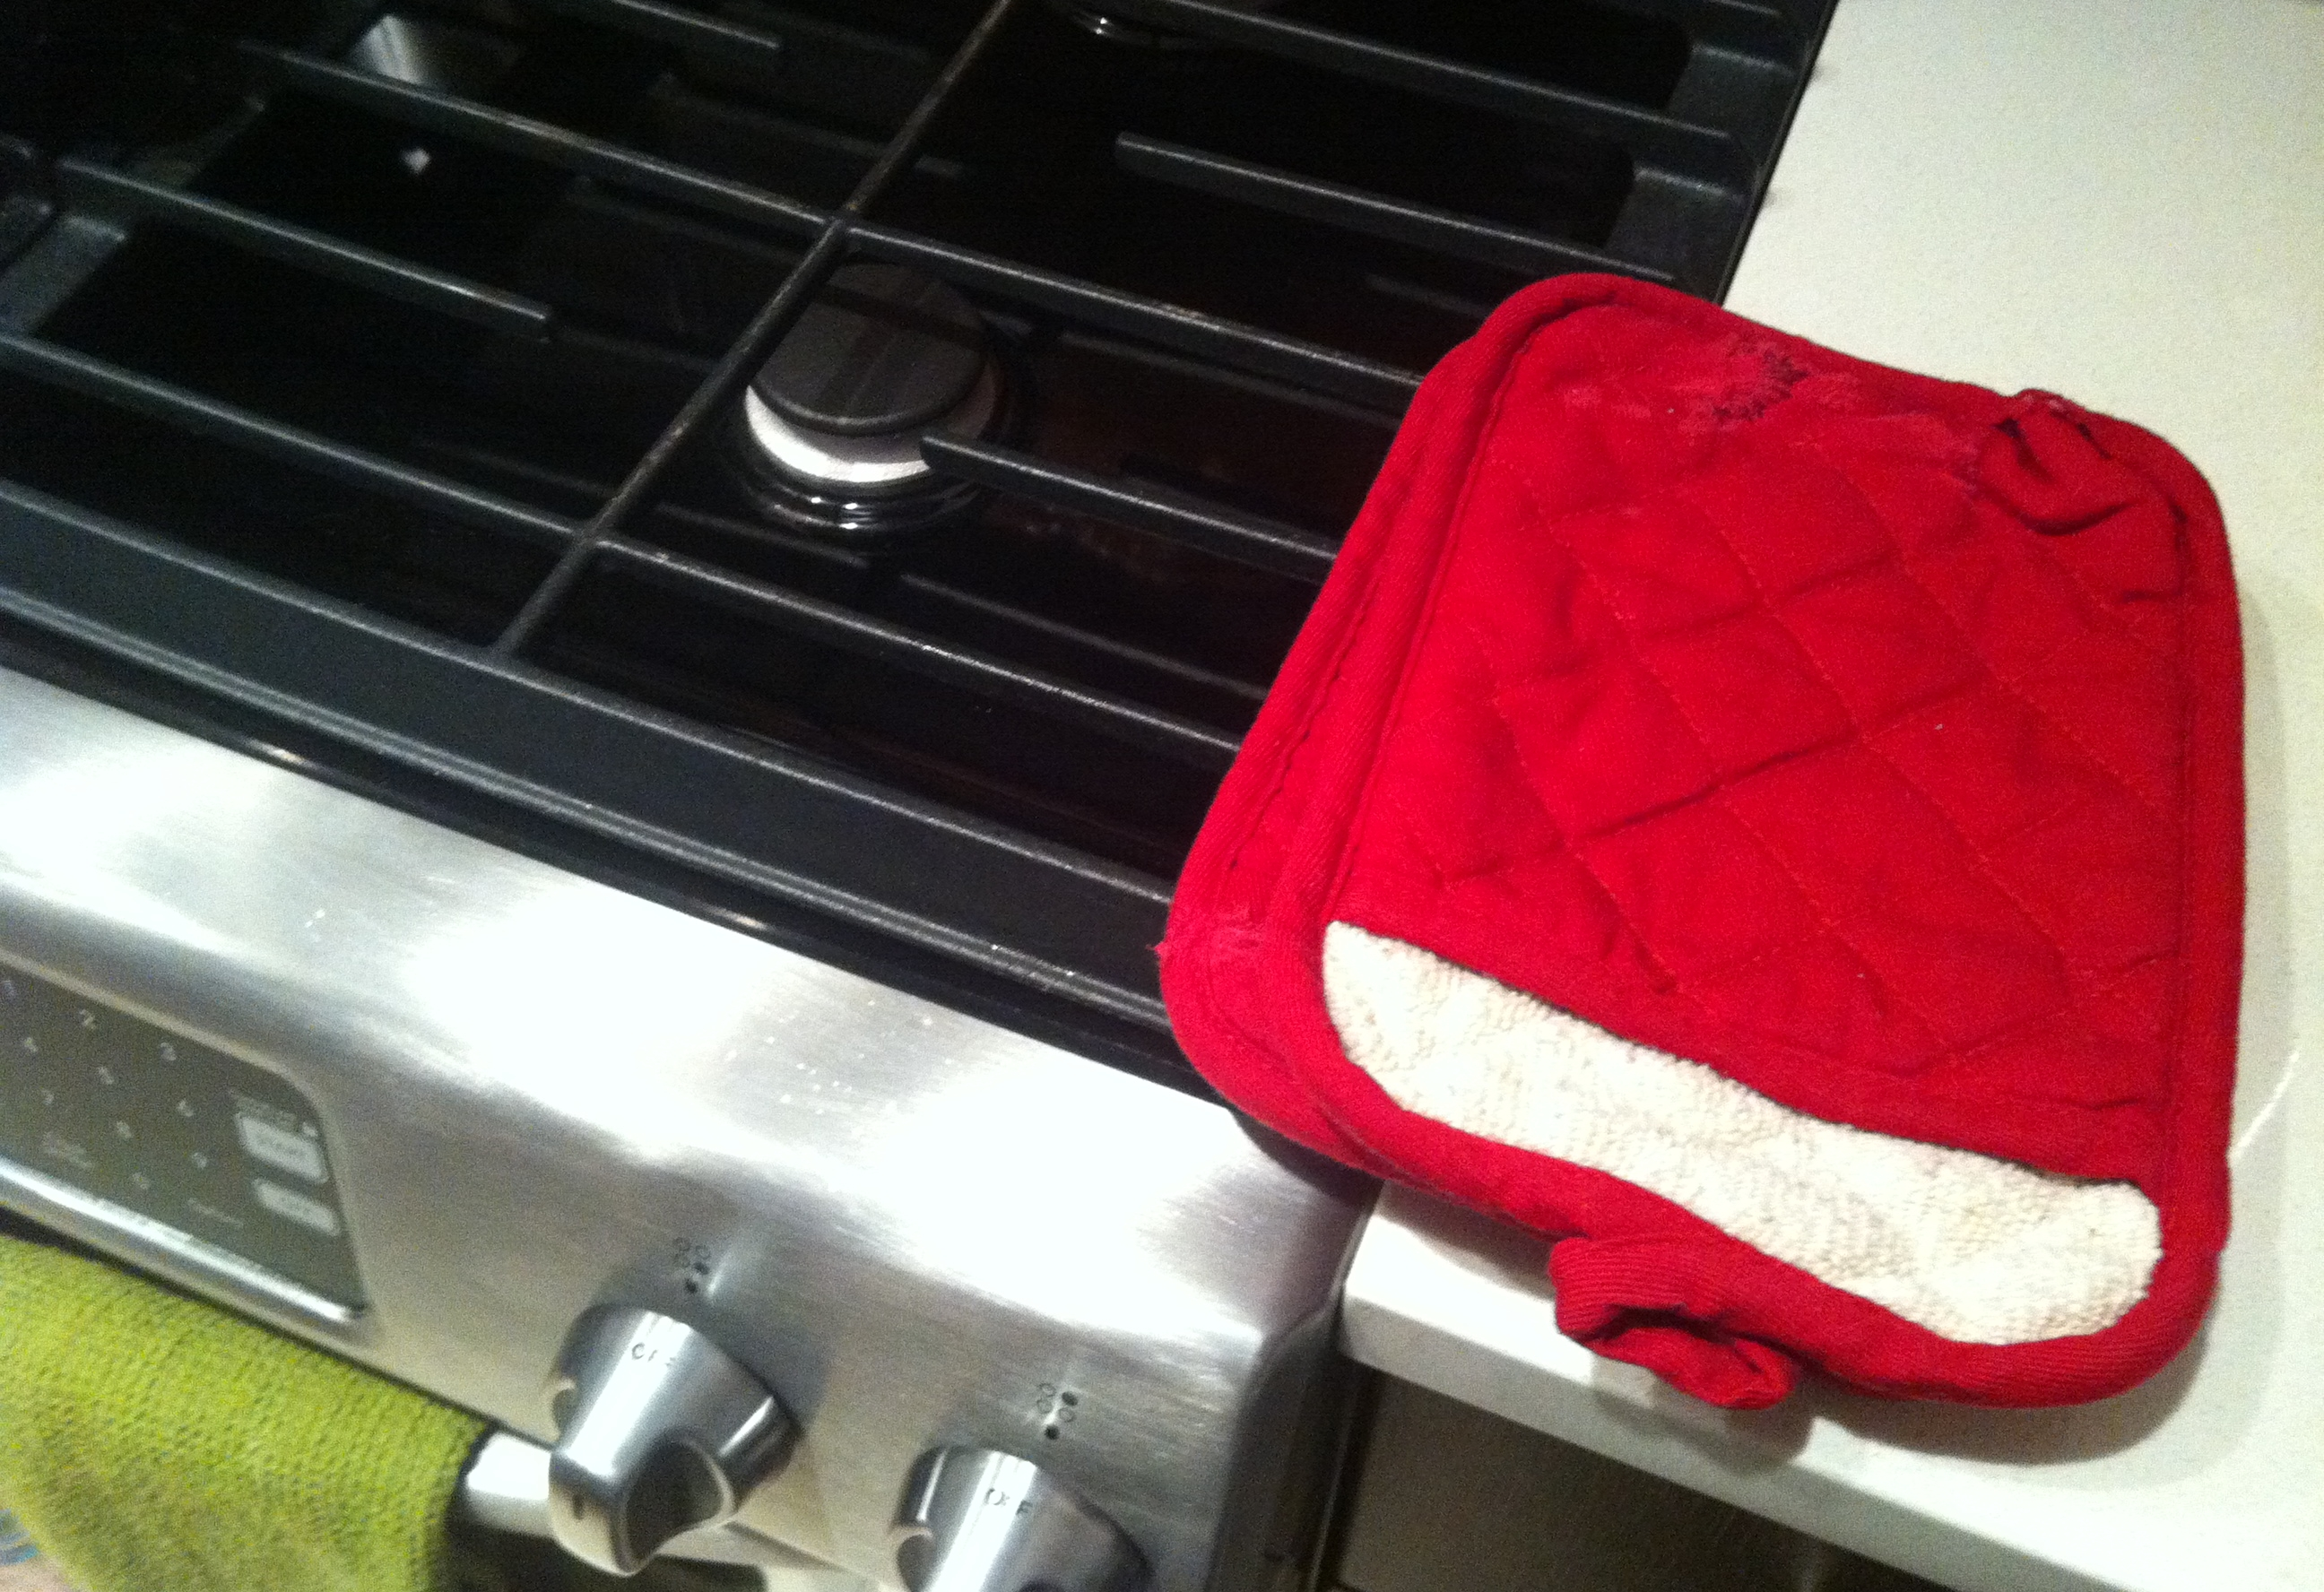 Potholders right next to the stove; okay, they're normally a few inches to the right of where they are here